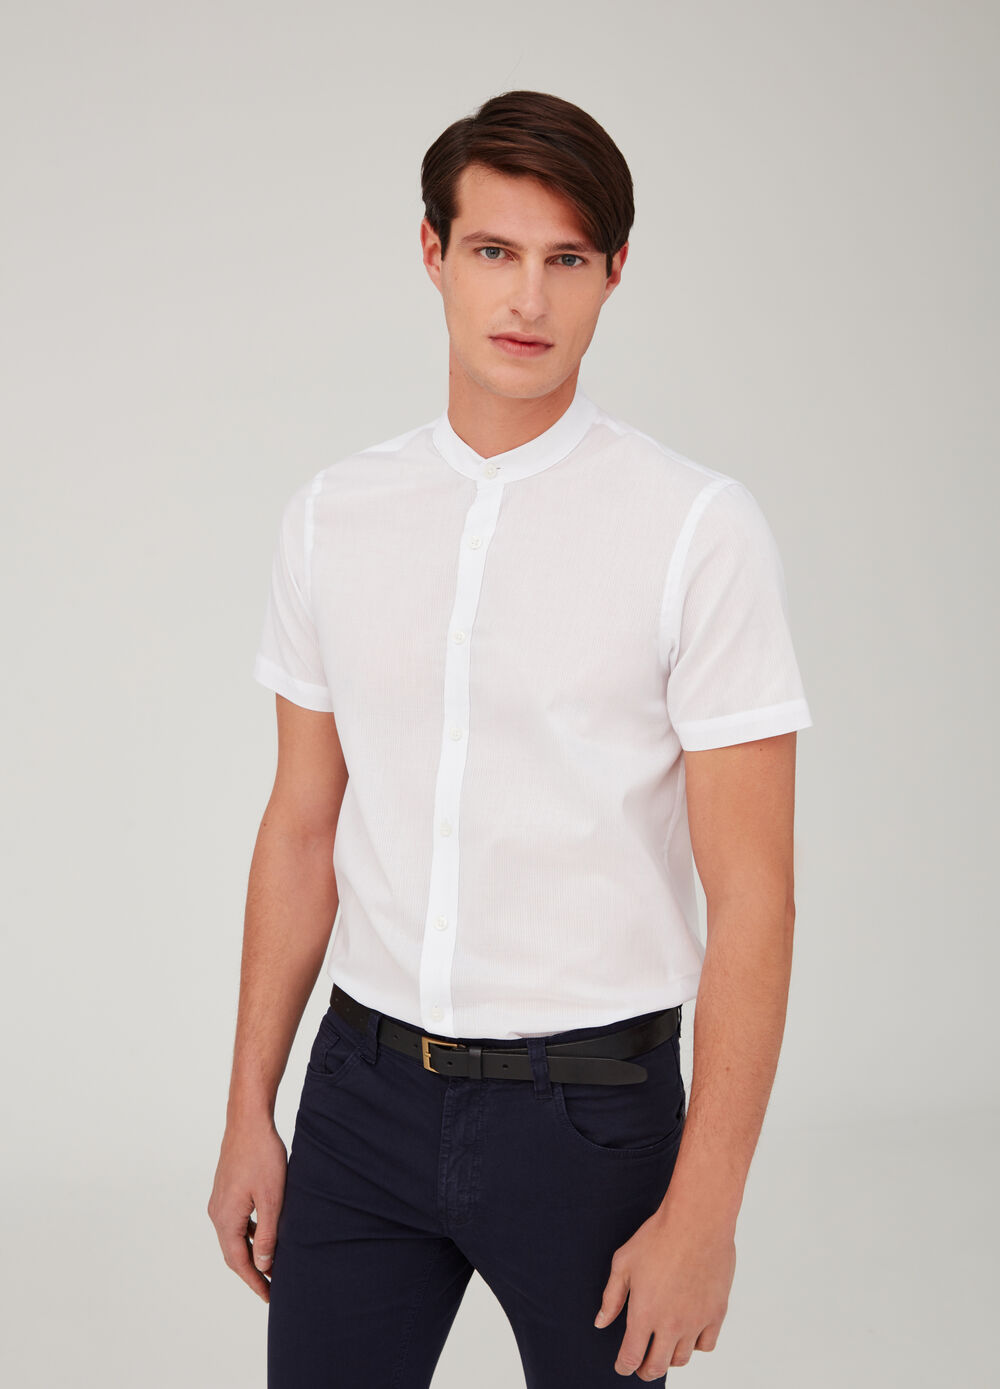 Charmeuse-weave shirt with Mandarin collar